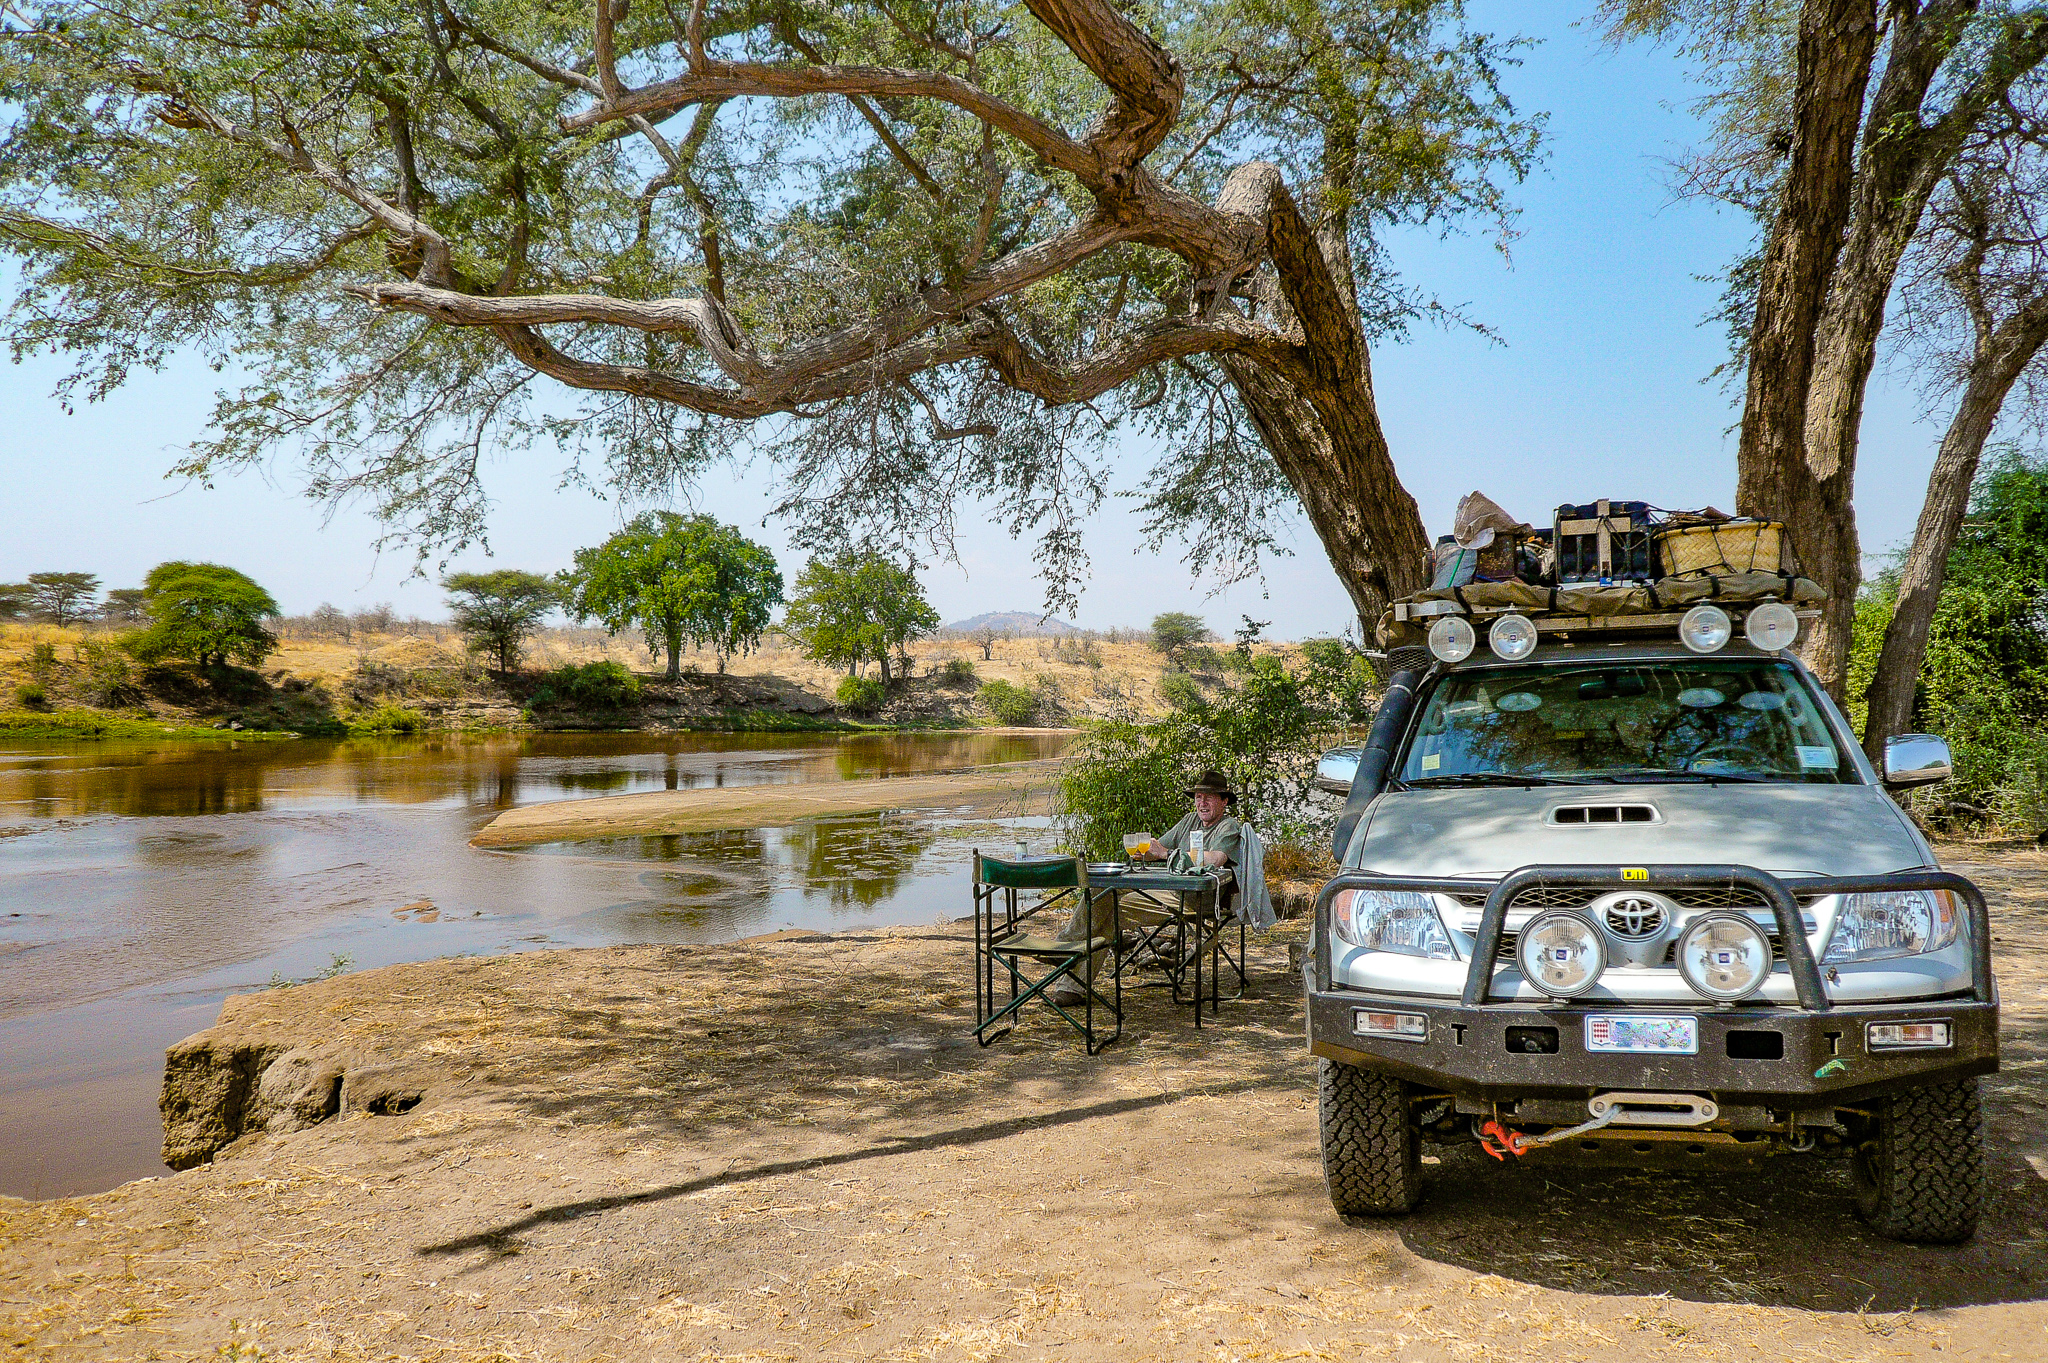 IN RUAHA NATIONAL PARK WE EVENTUALLY FOUND THE CORRECT CAMPSITE BESIDE THE RIVER.